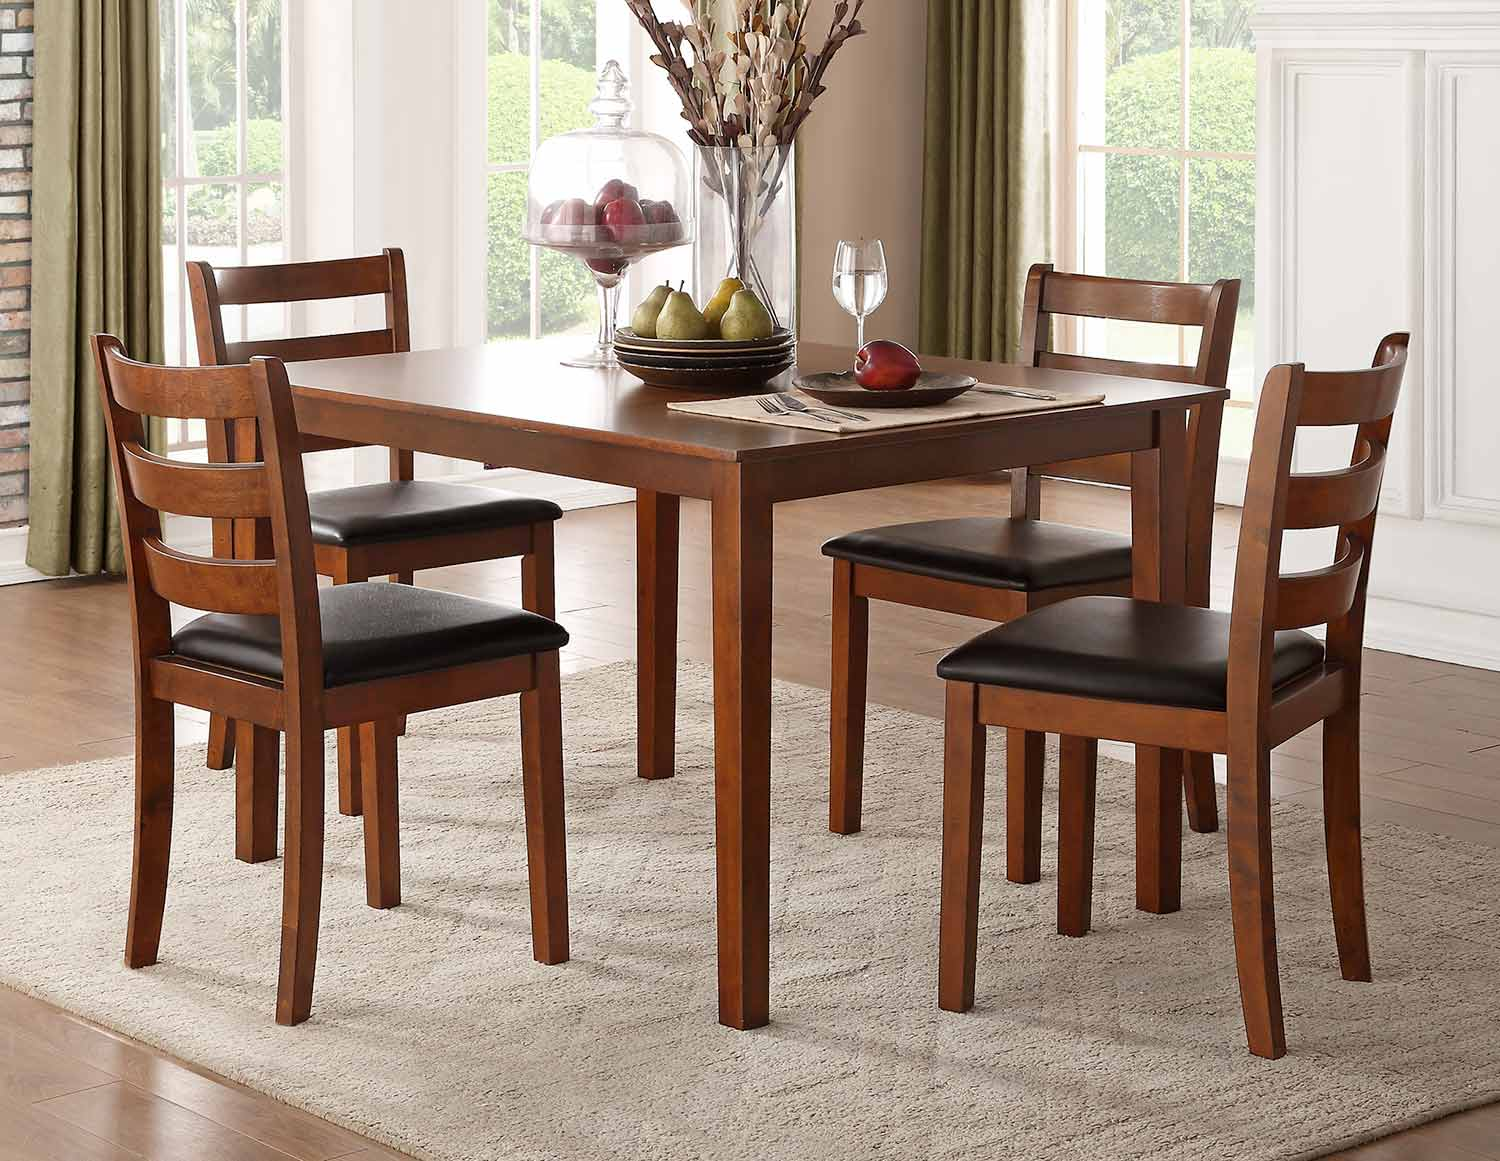 Homelegance Ivins 5-Piece Dining Set - Cherry - Dark Brown Bi-Cast Vinyl